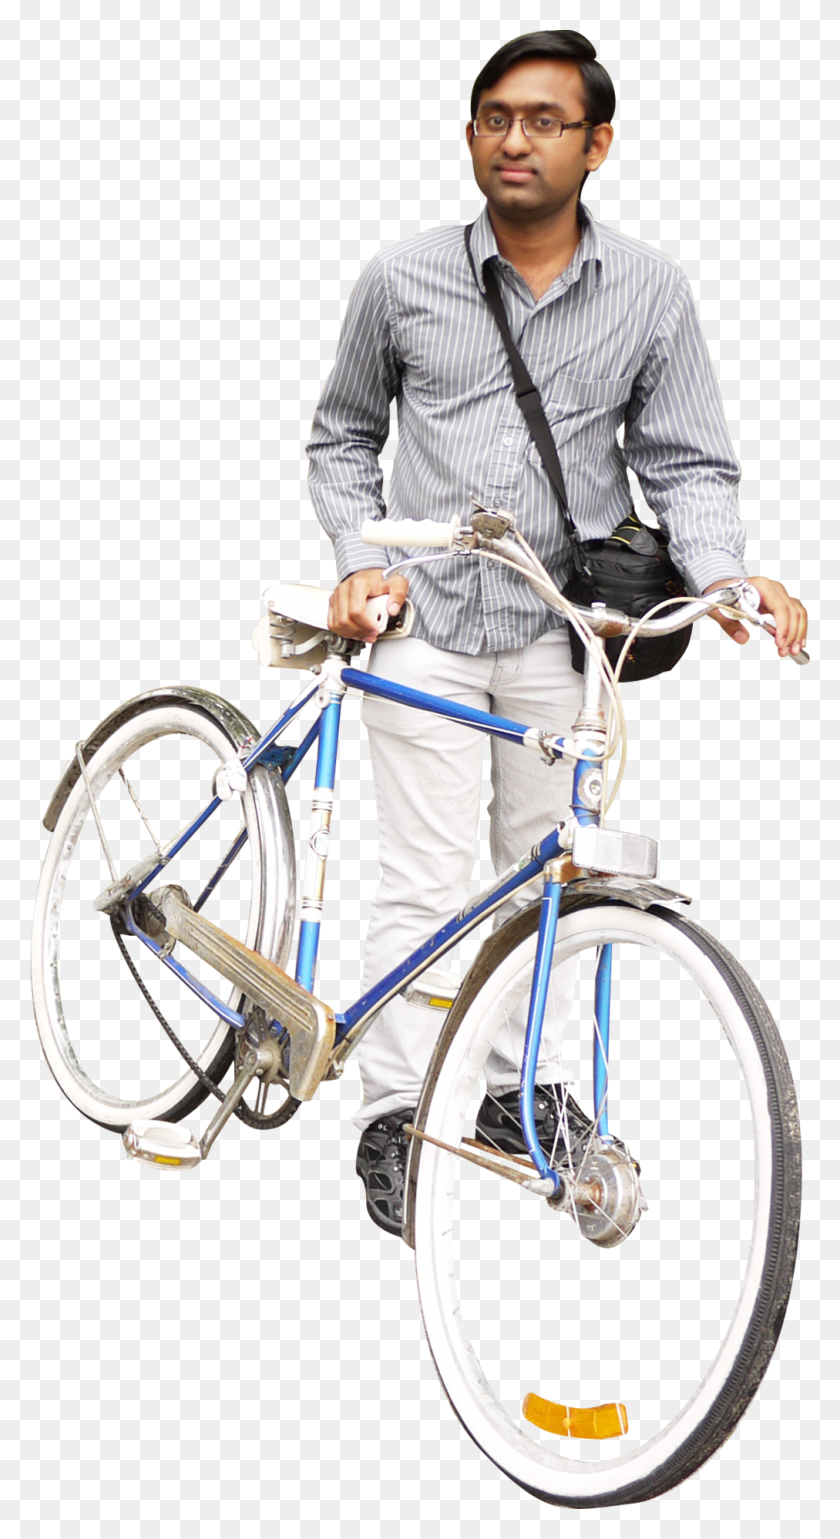 Bicycles Png Images Free Download Pictures - Old People PNG